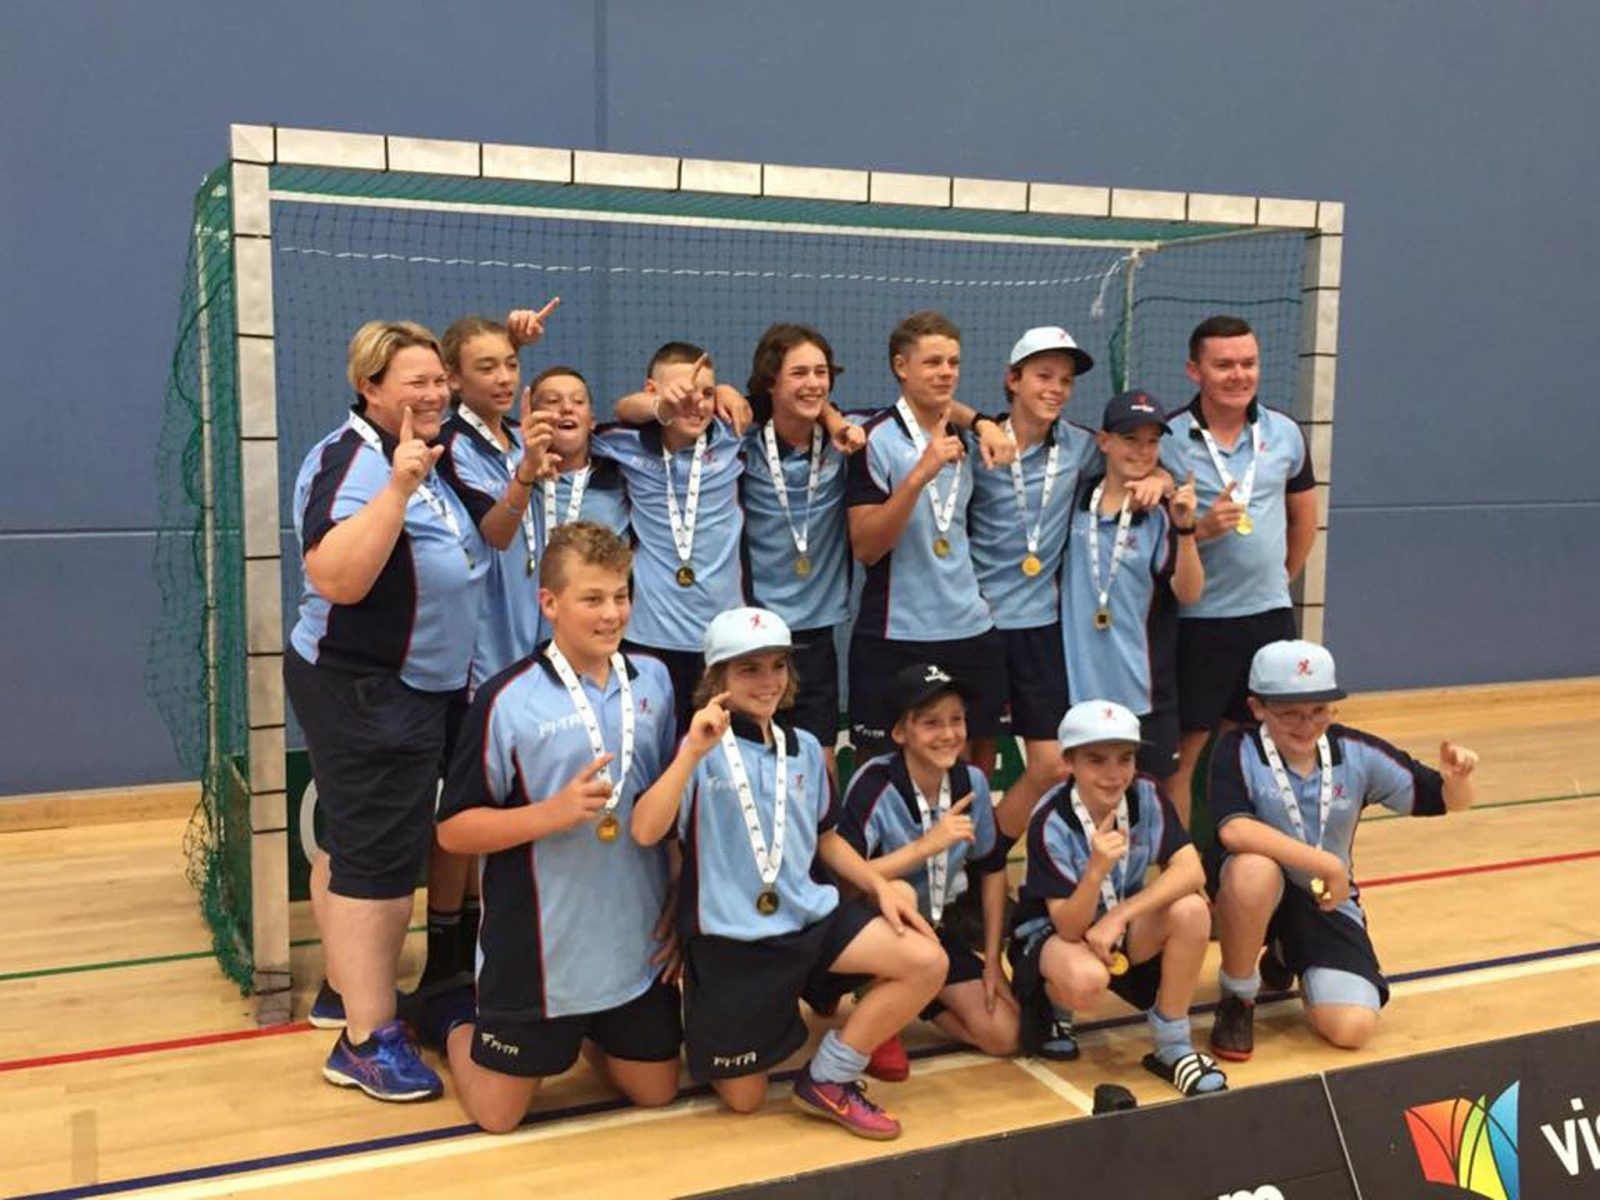 Under 18 boys posing for a photo in the goal net